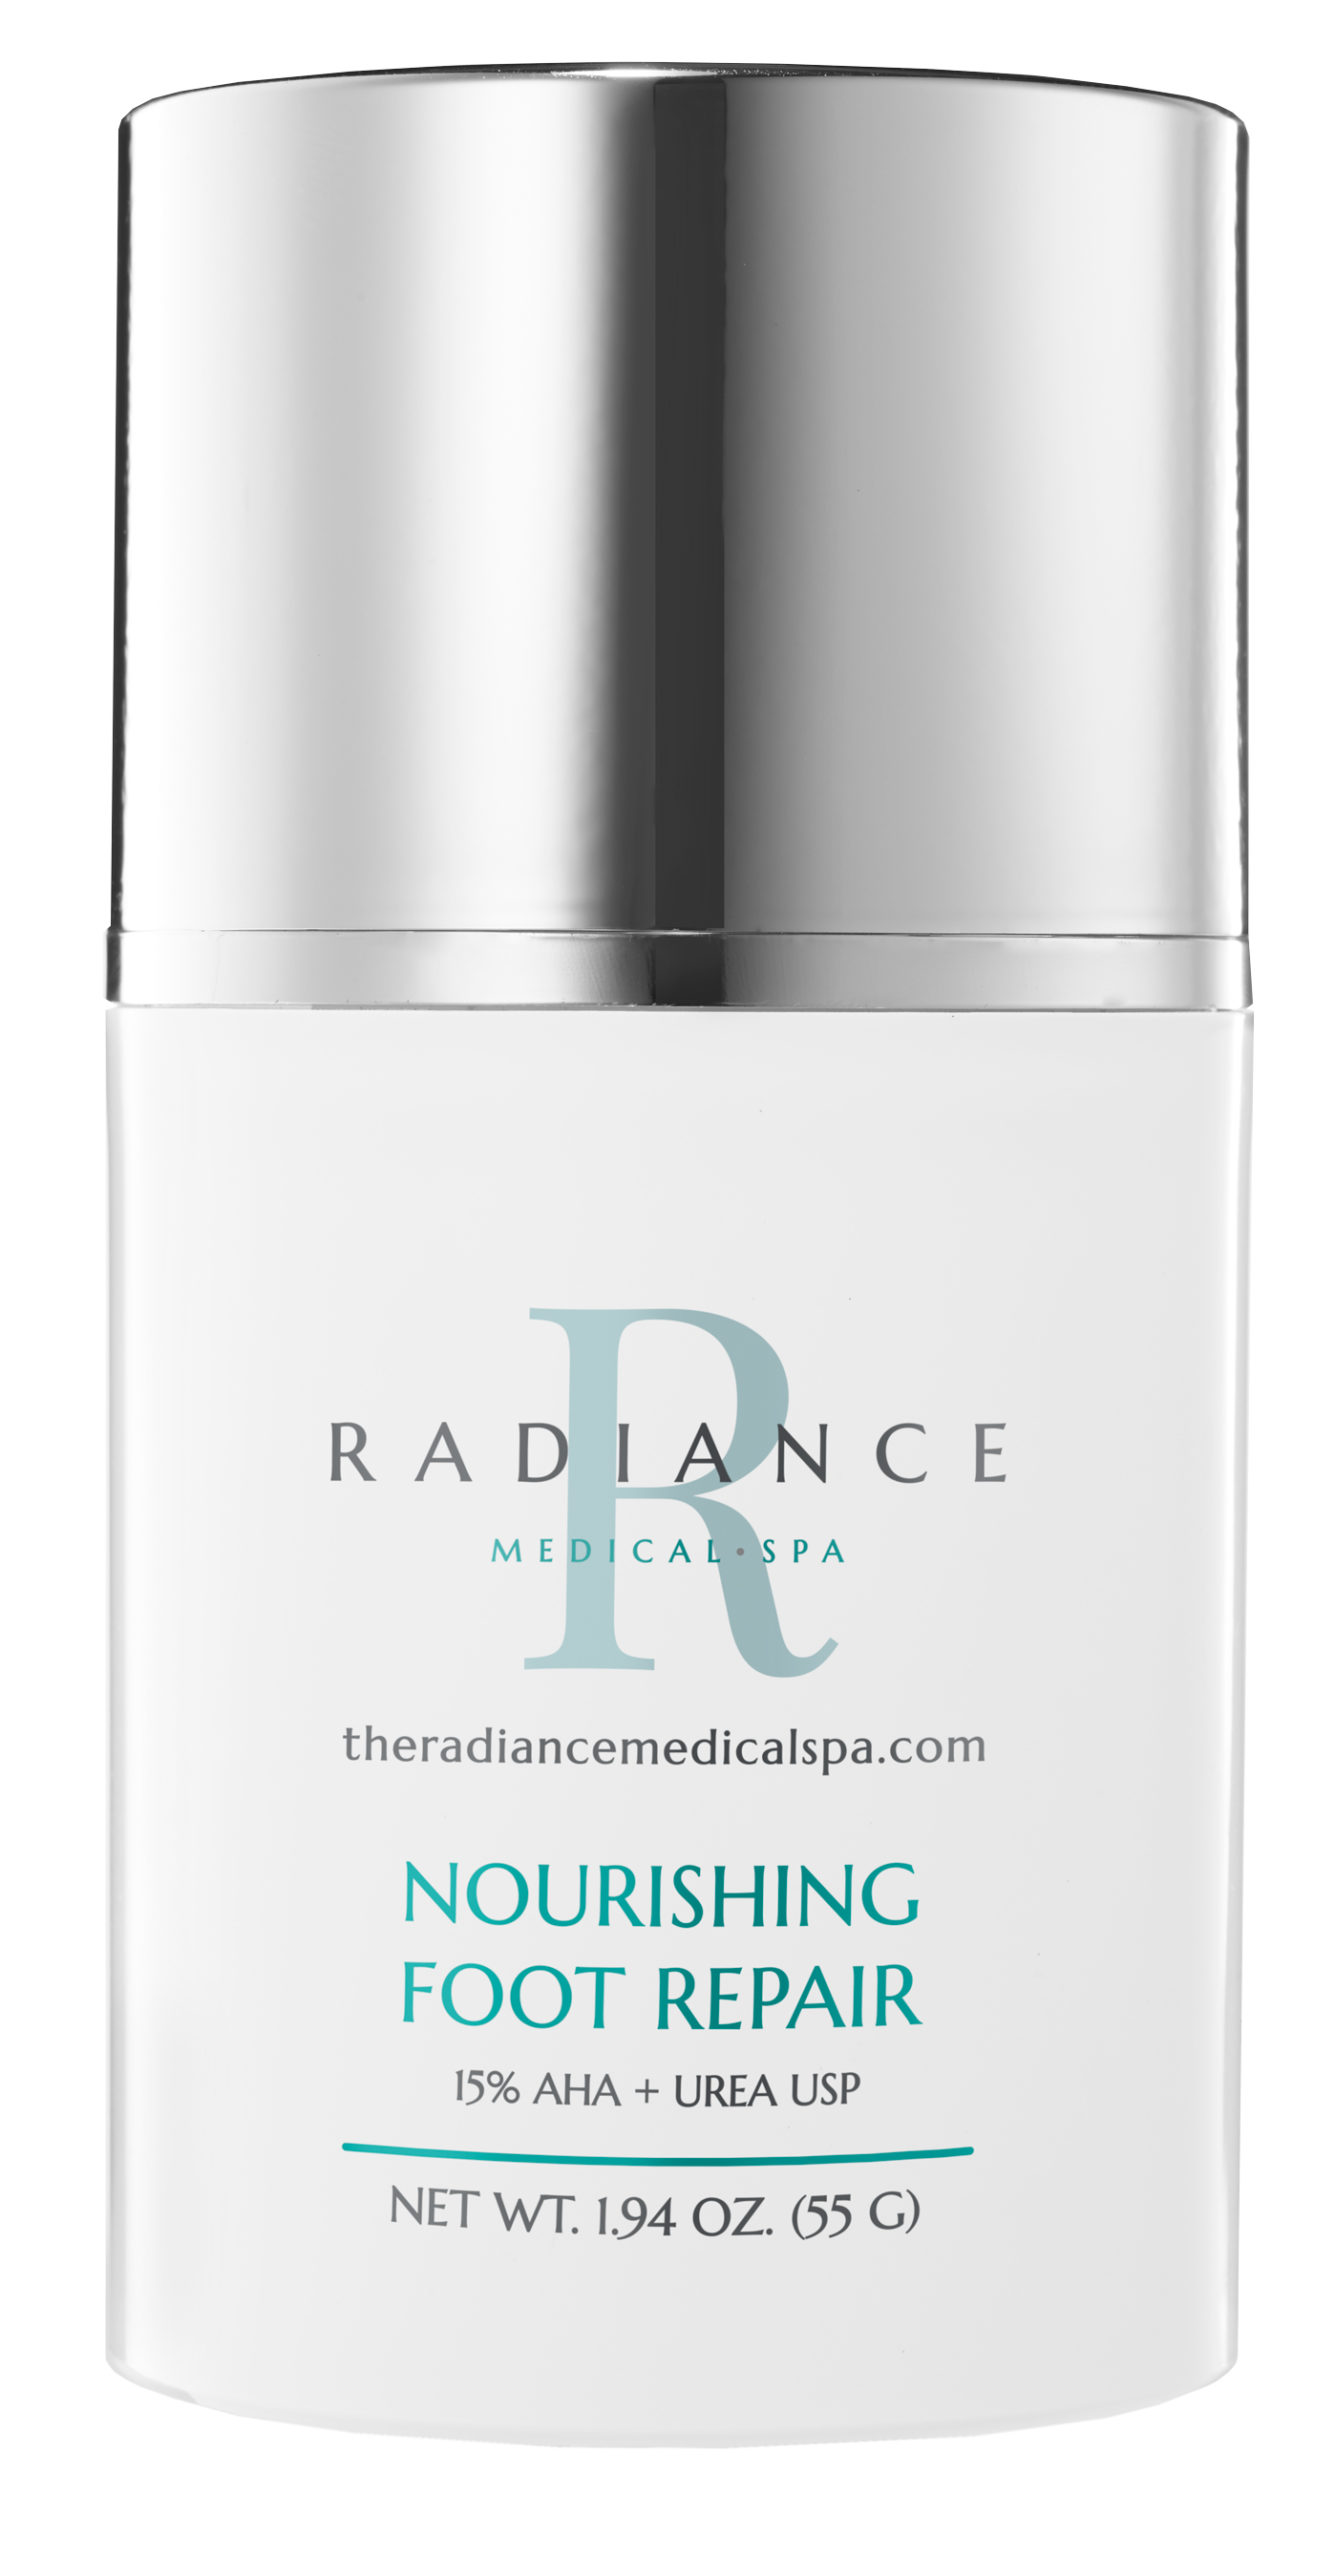 Nourishing Foot Repair